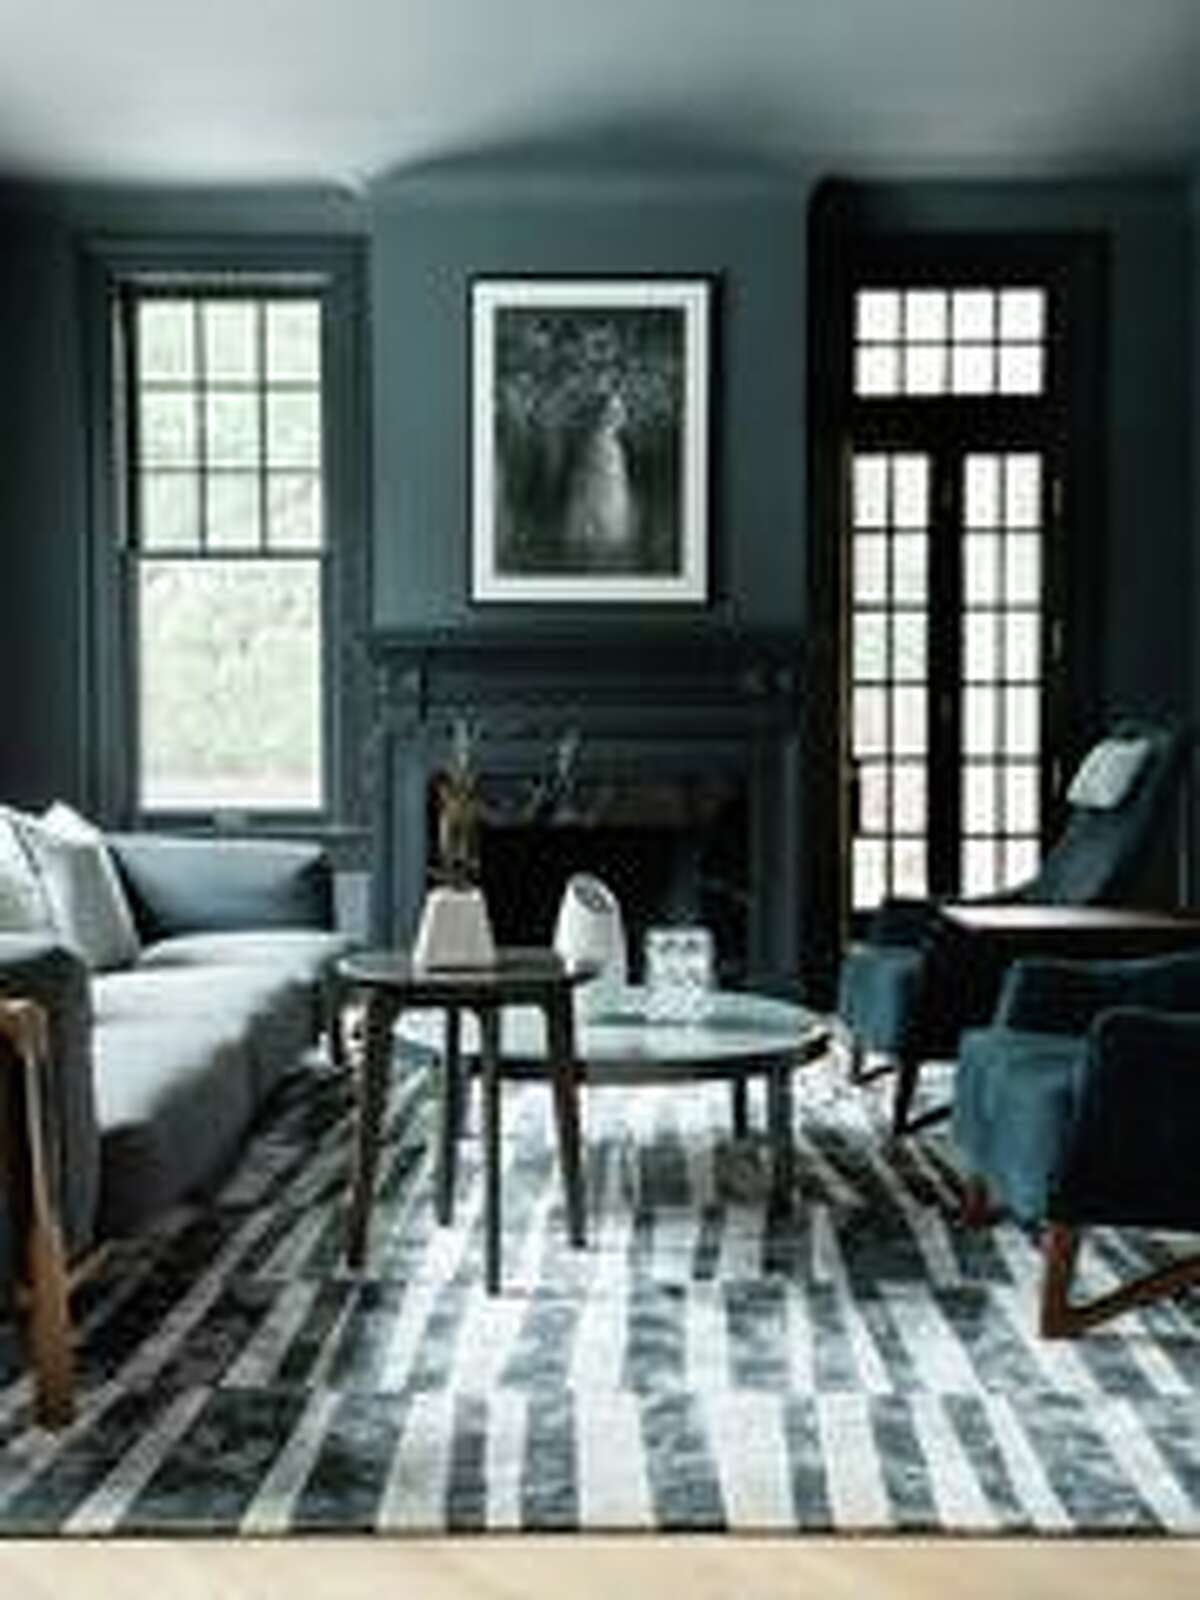 Inside, Sudhoff and Hooker, an architect, went for mostly white and light interiors, but created a moody escape in this front sitting room.